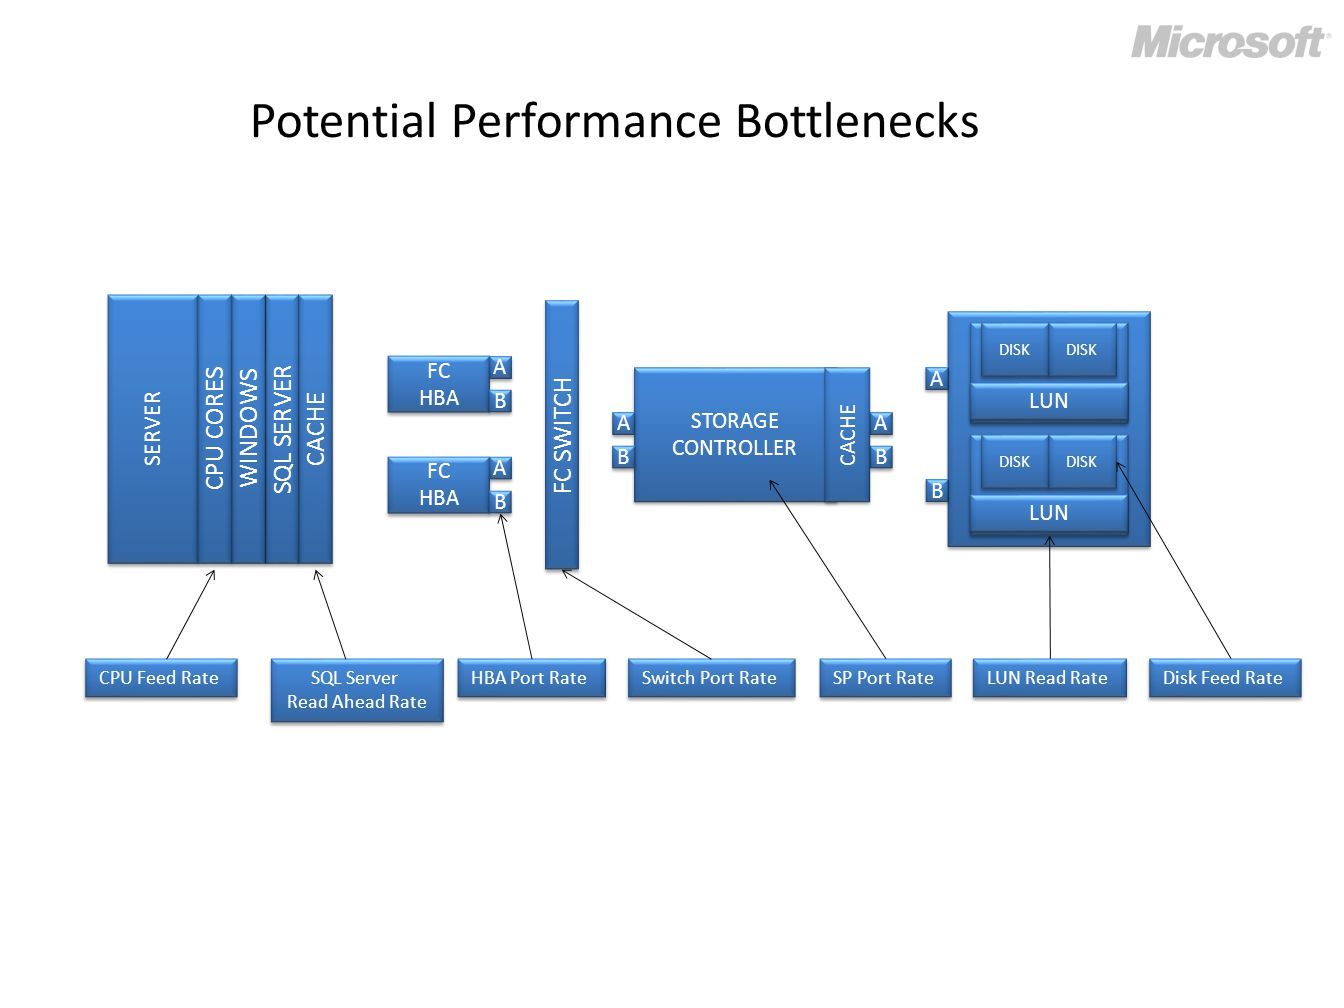 Potential Performance Bottlenecks FC HBA FC HBA A A B B FC HBA FC HBA A A B B FC SWITCH STORAGE CONTROLLER STORAGE CONTROLLER A A B B A A B B CACHE SERVER CACHE SQL SERVER WINDOWS CPU CORES CPU Feed Rate HBA Port Rate Switch Port Rate SP Port Rate A A B B DISK LUN DISK LUN SQL Server Read Ahead Rate SQL Server Read Ahead Rate LUN Read Rate Disk Feed Rate